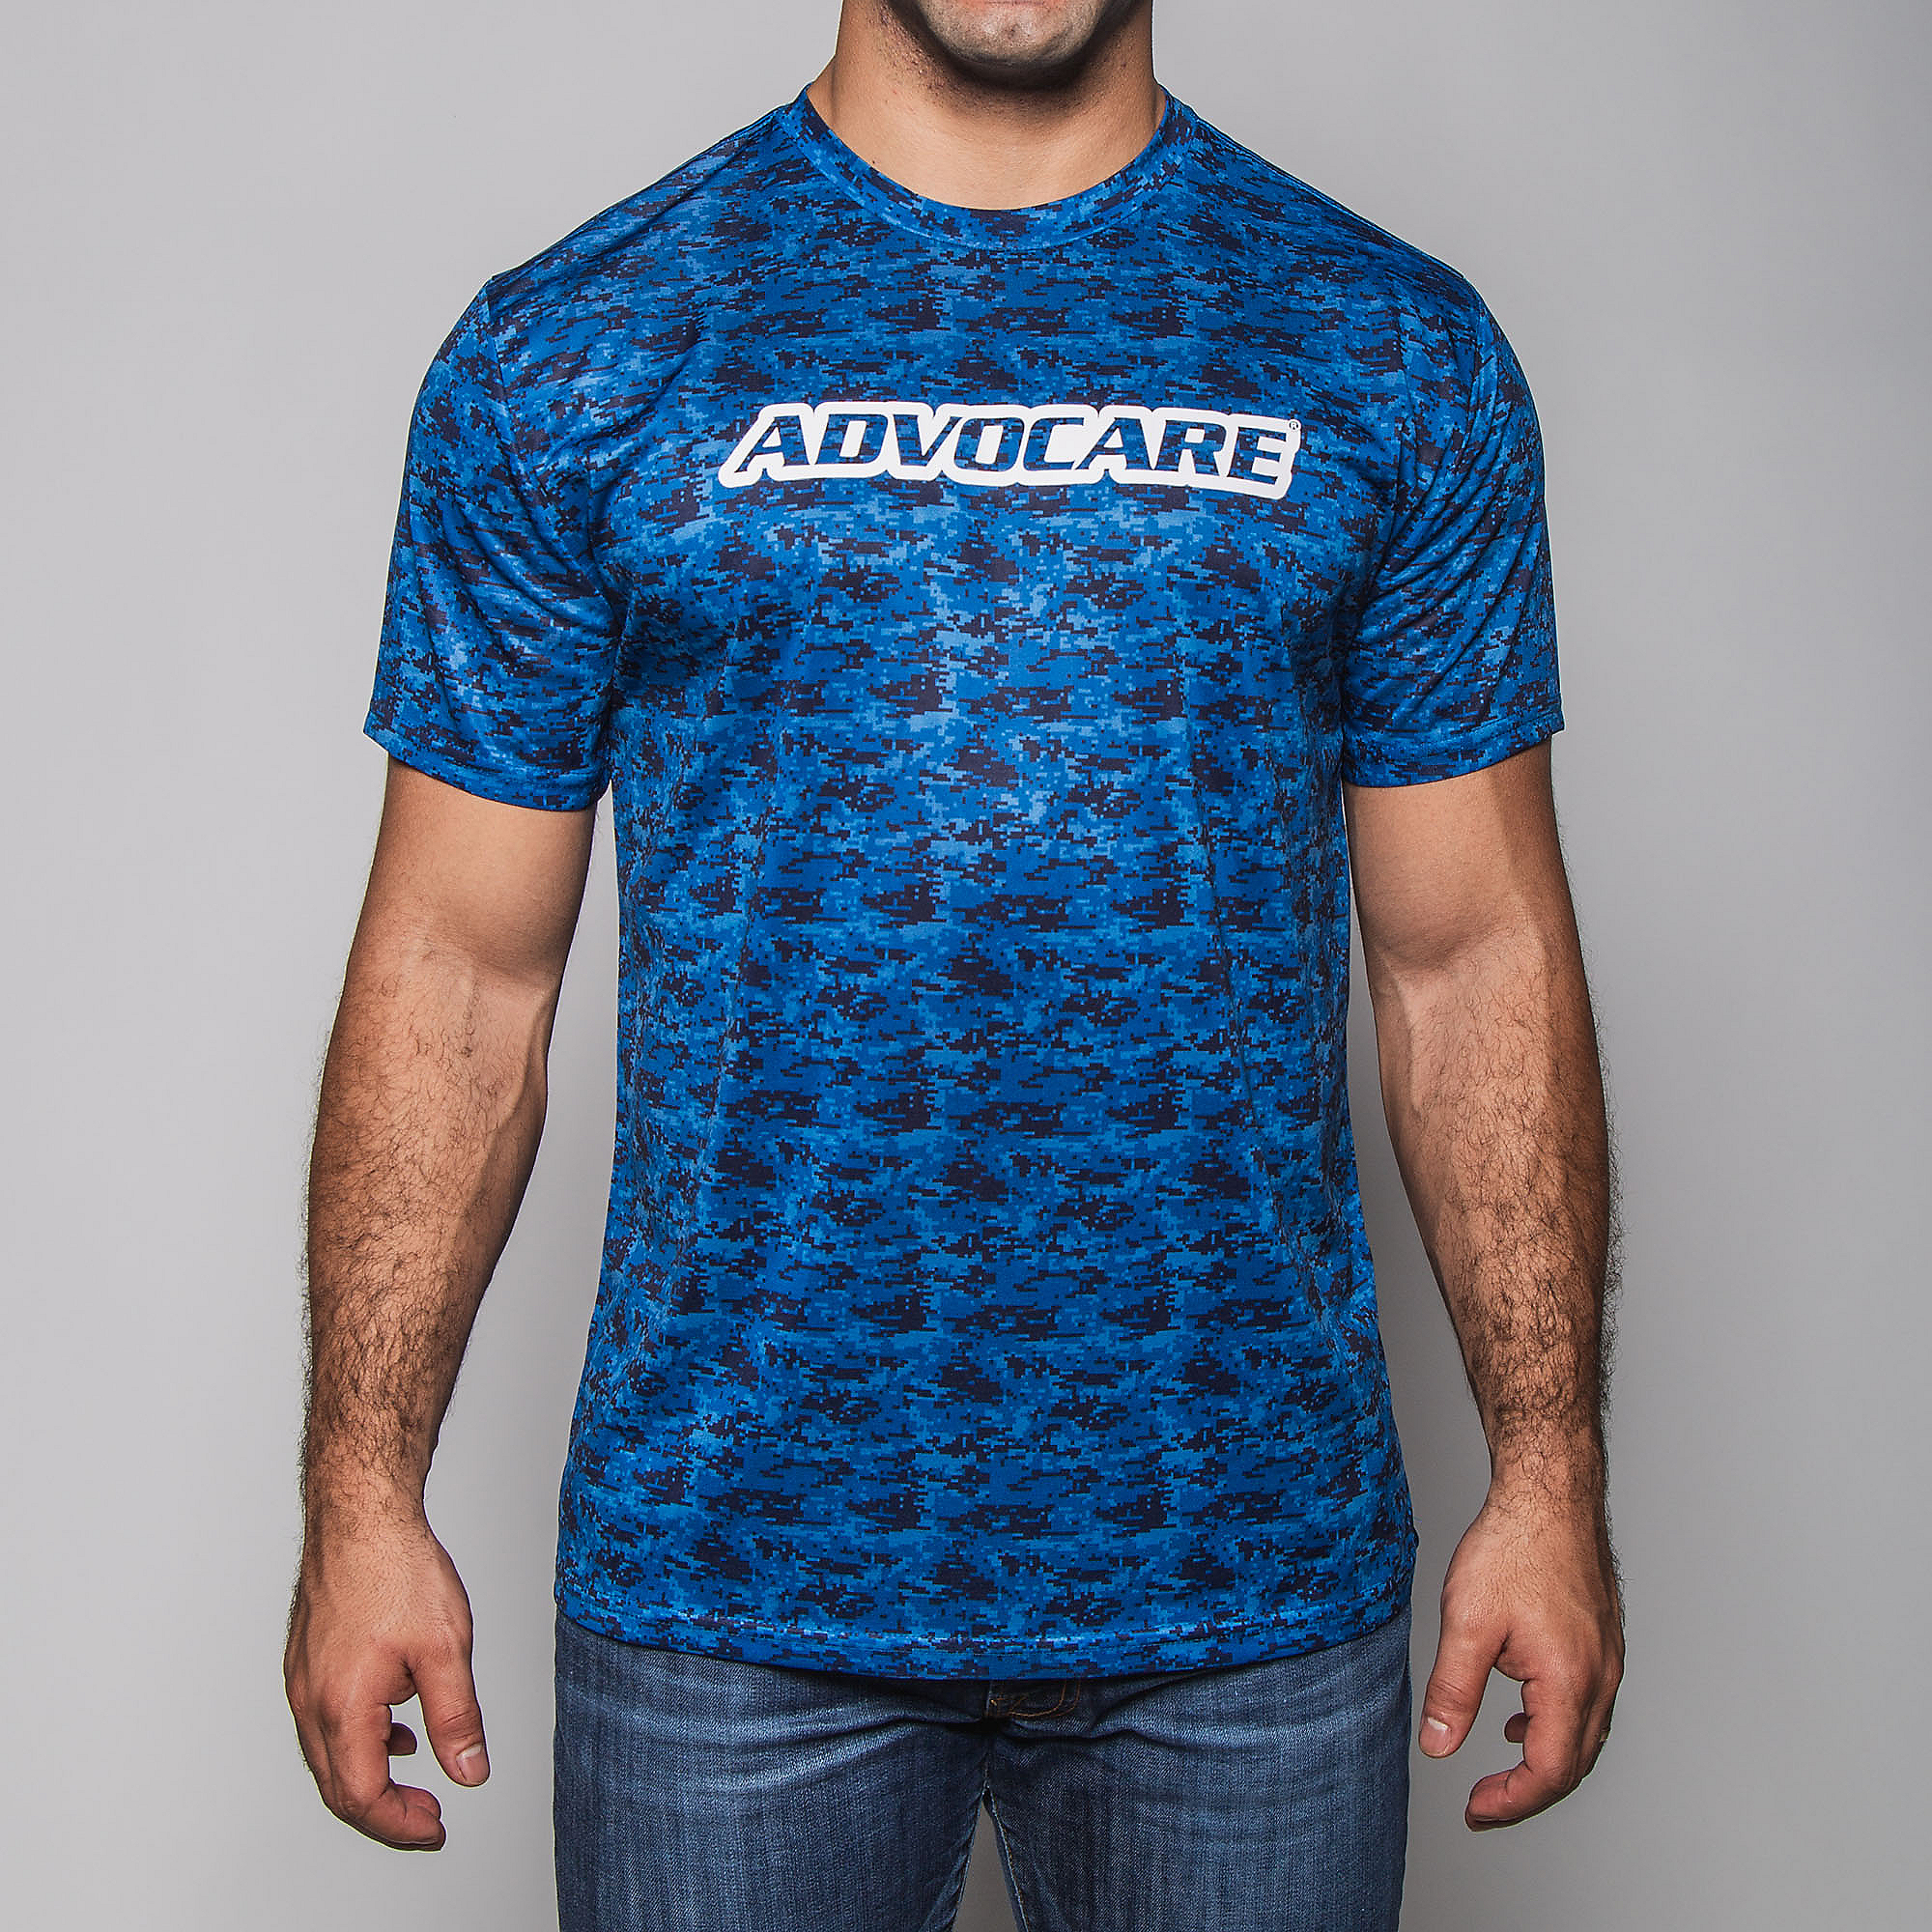 AdvoCare Dundee Performance Tee